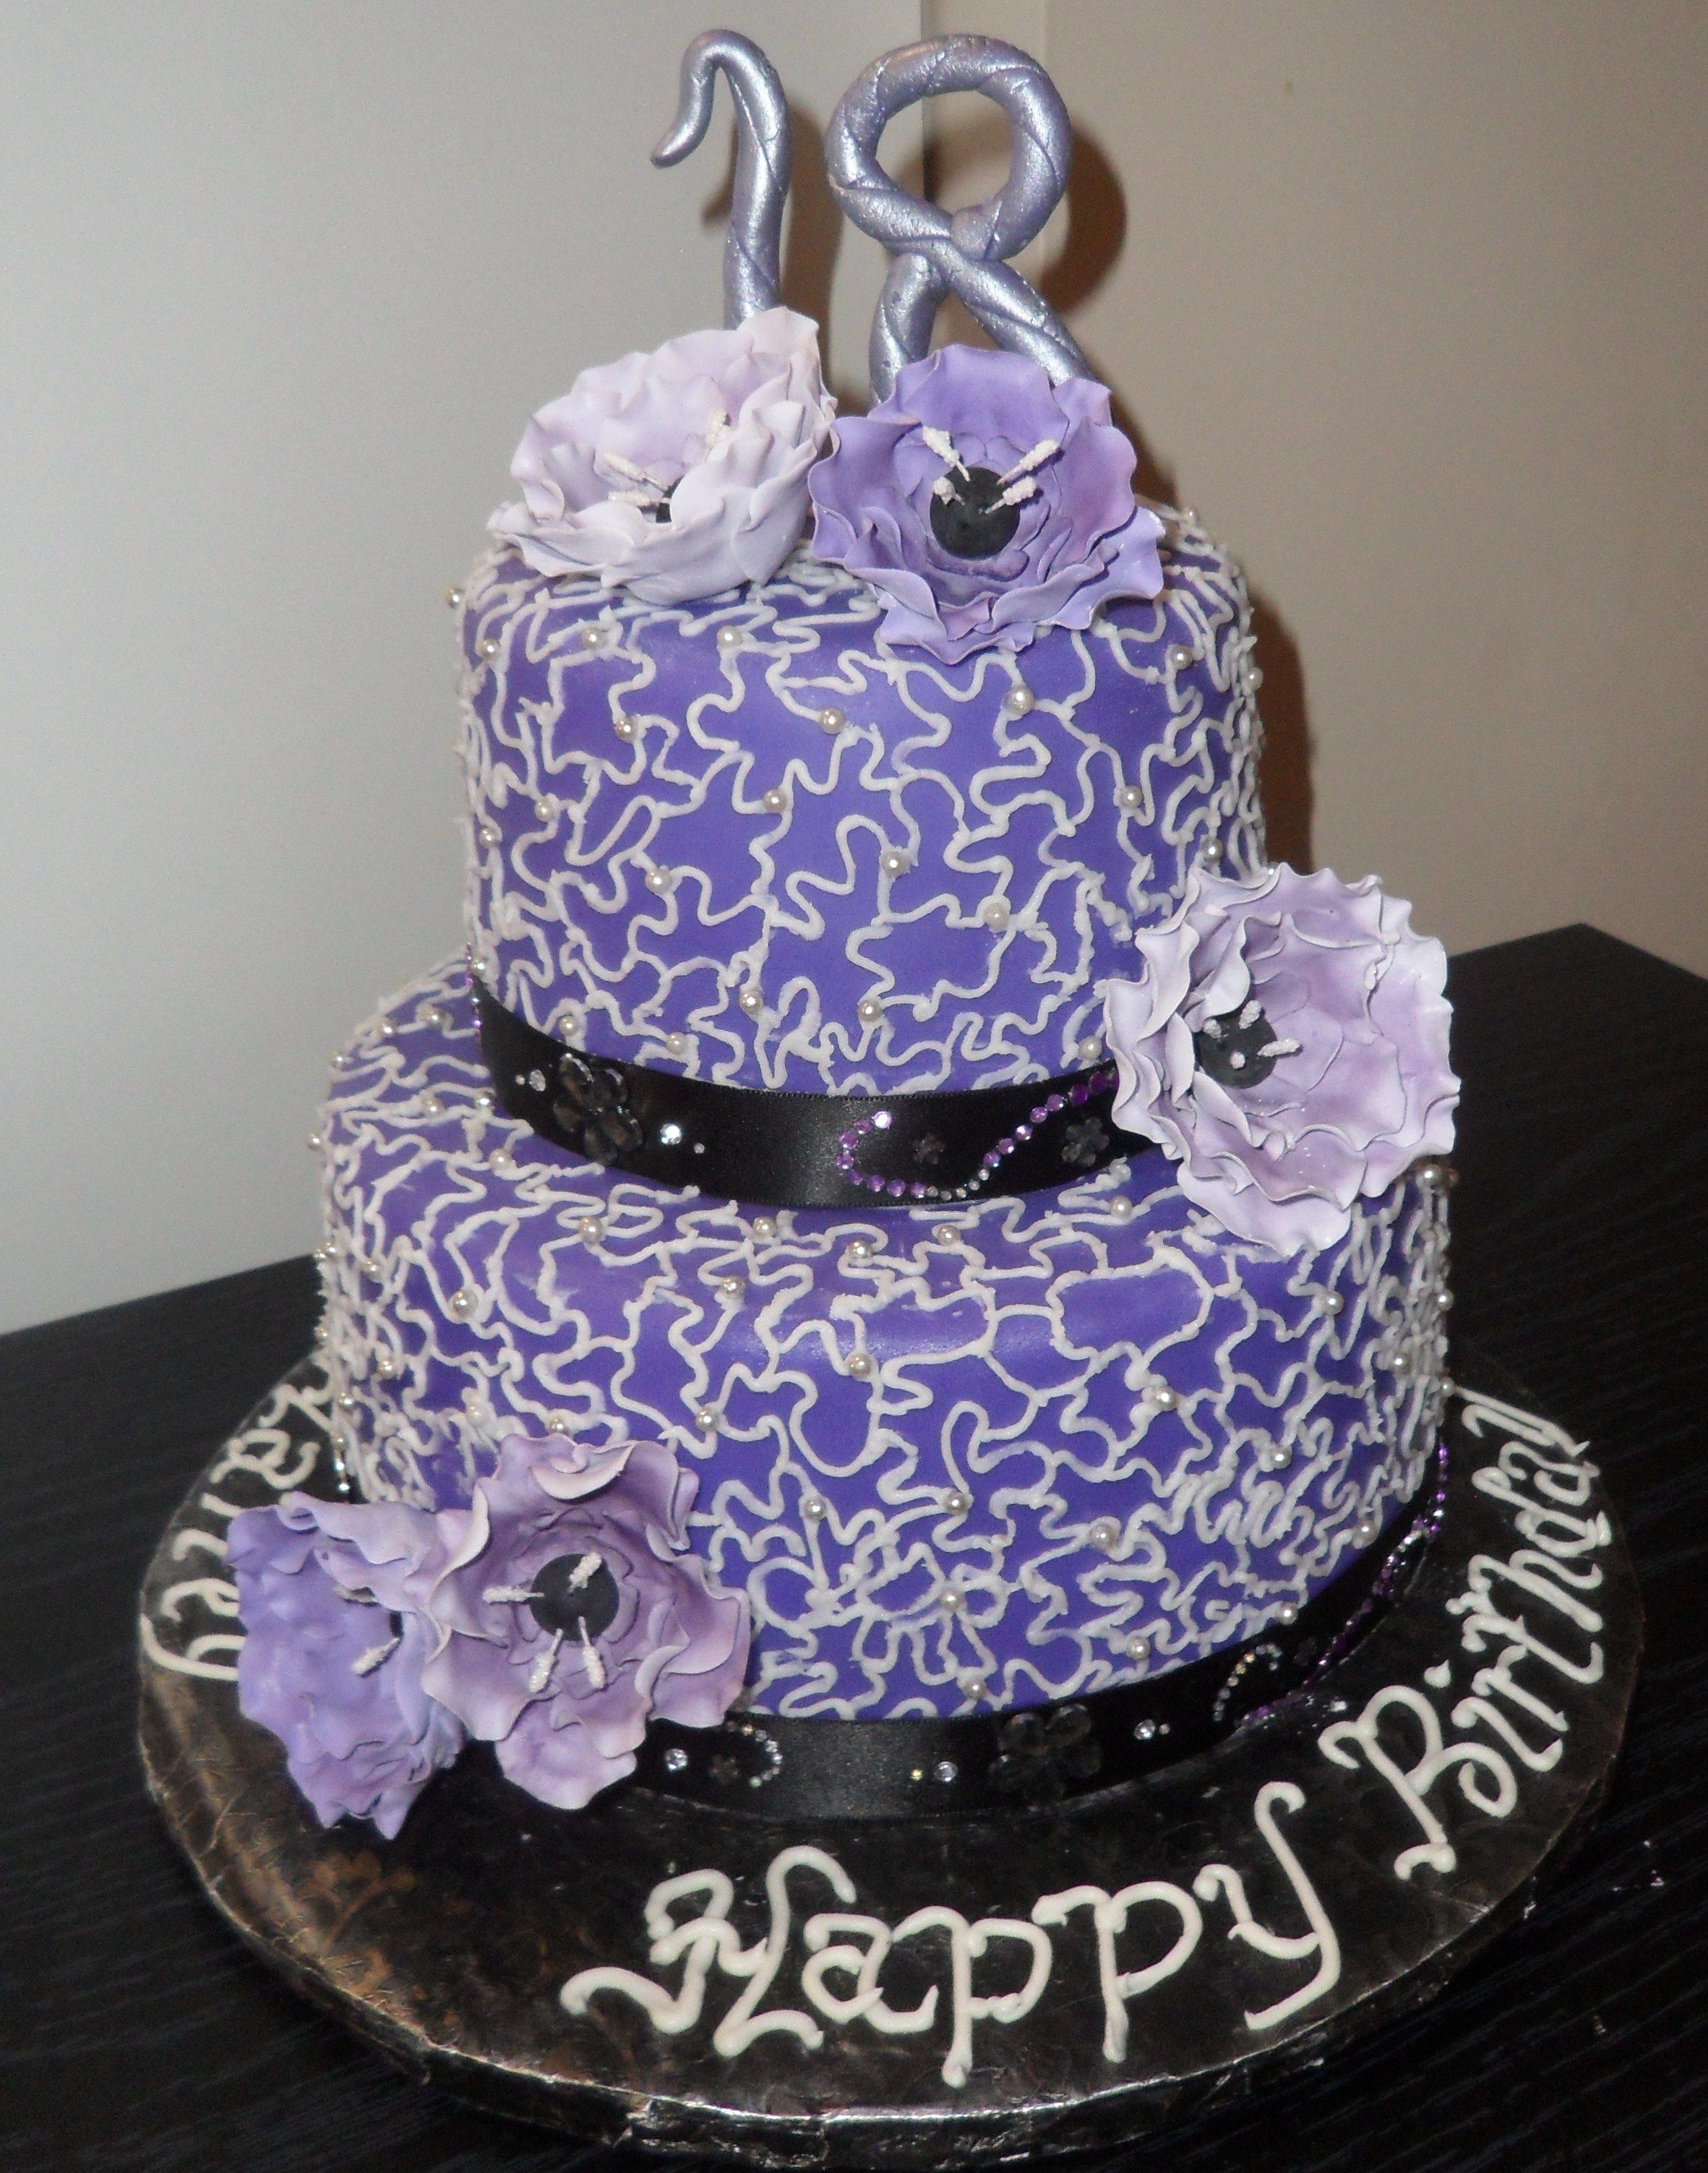 18th Birthday Cake With Purple Fantasy Flowers